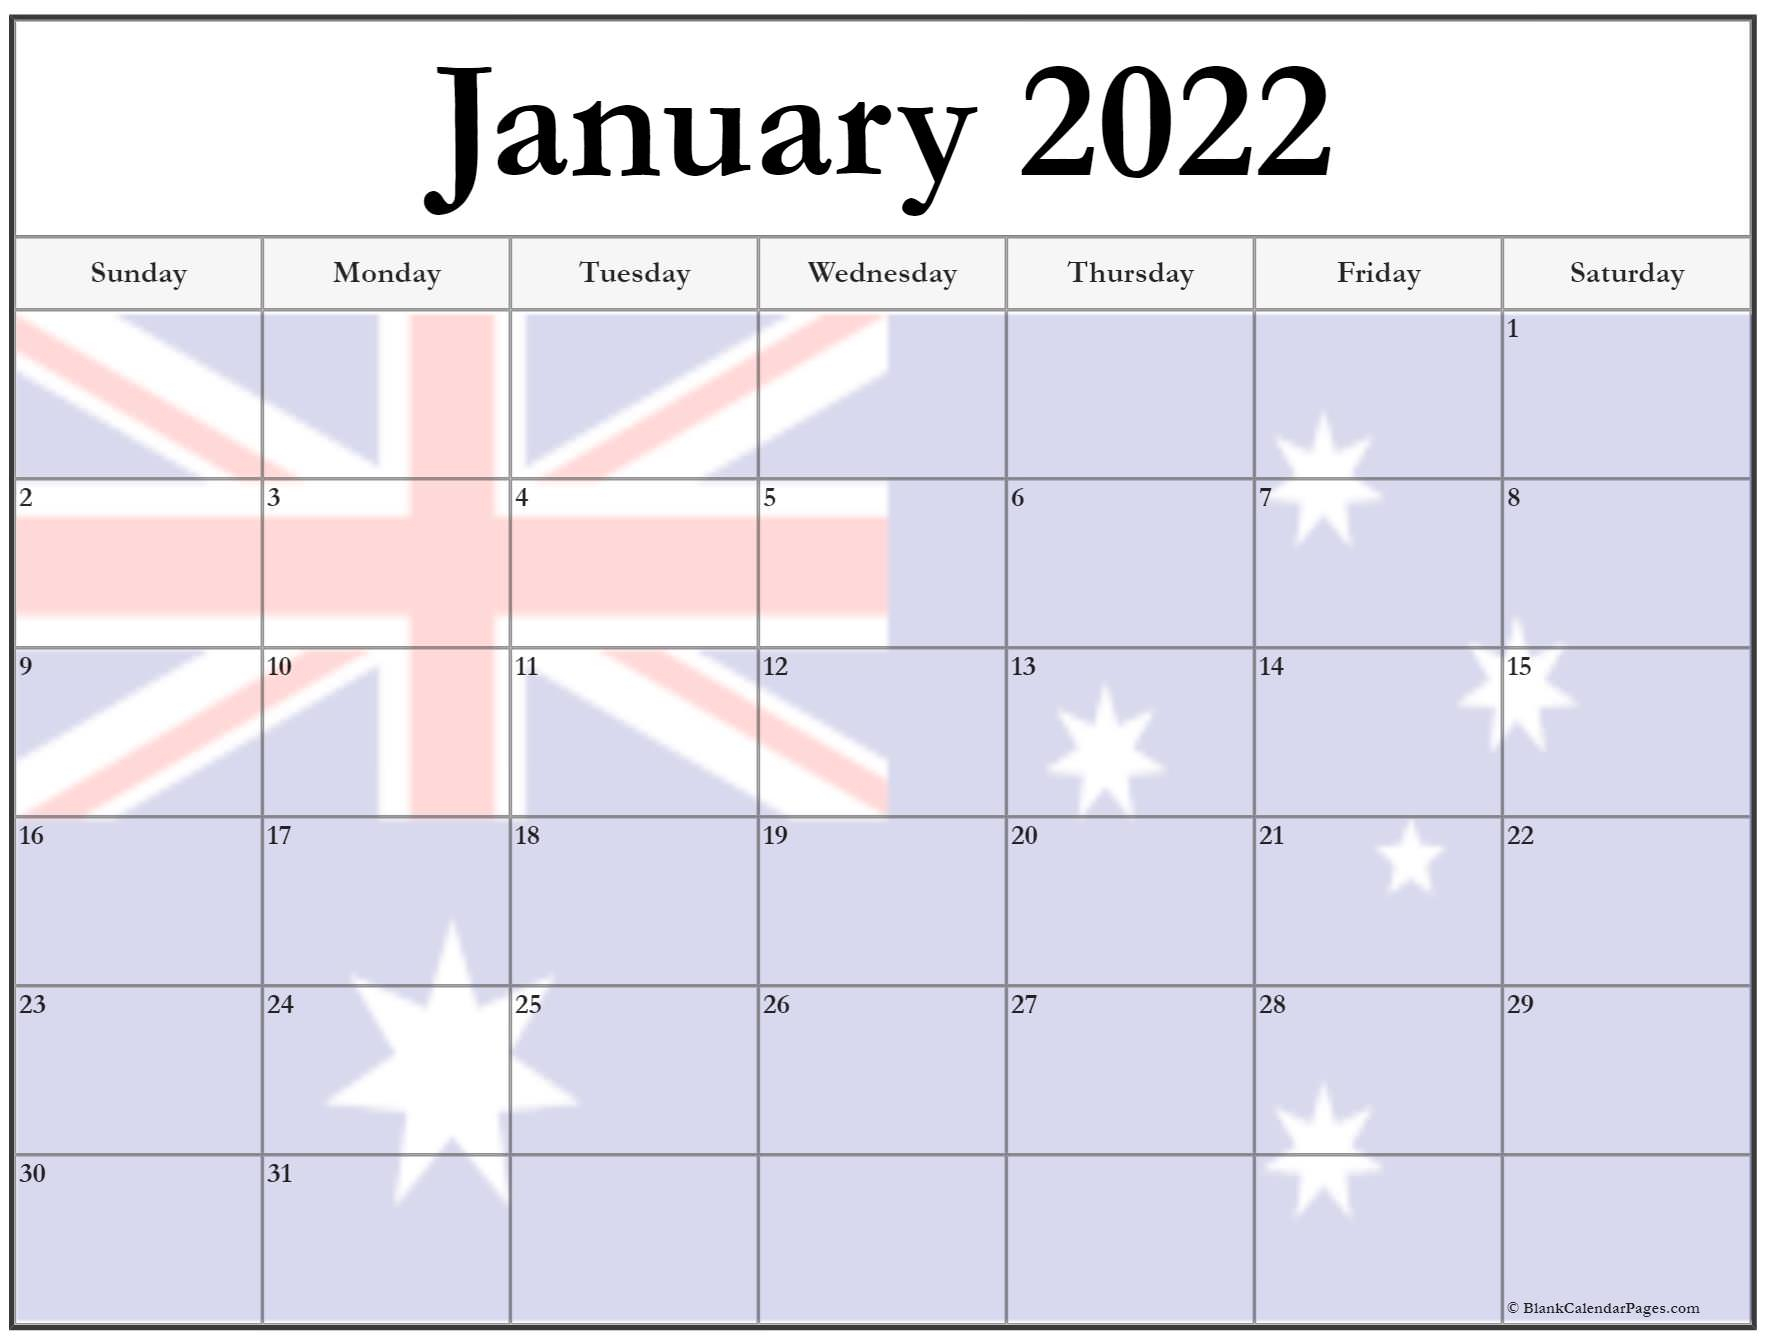 Collection Of January 2022 Photo Calendars With Image Filters. With Regard To January 2022 Calendar Printable Free